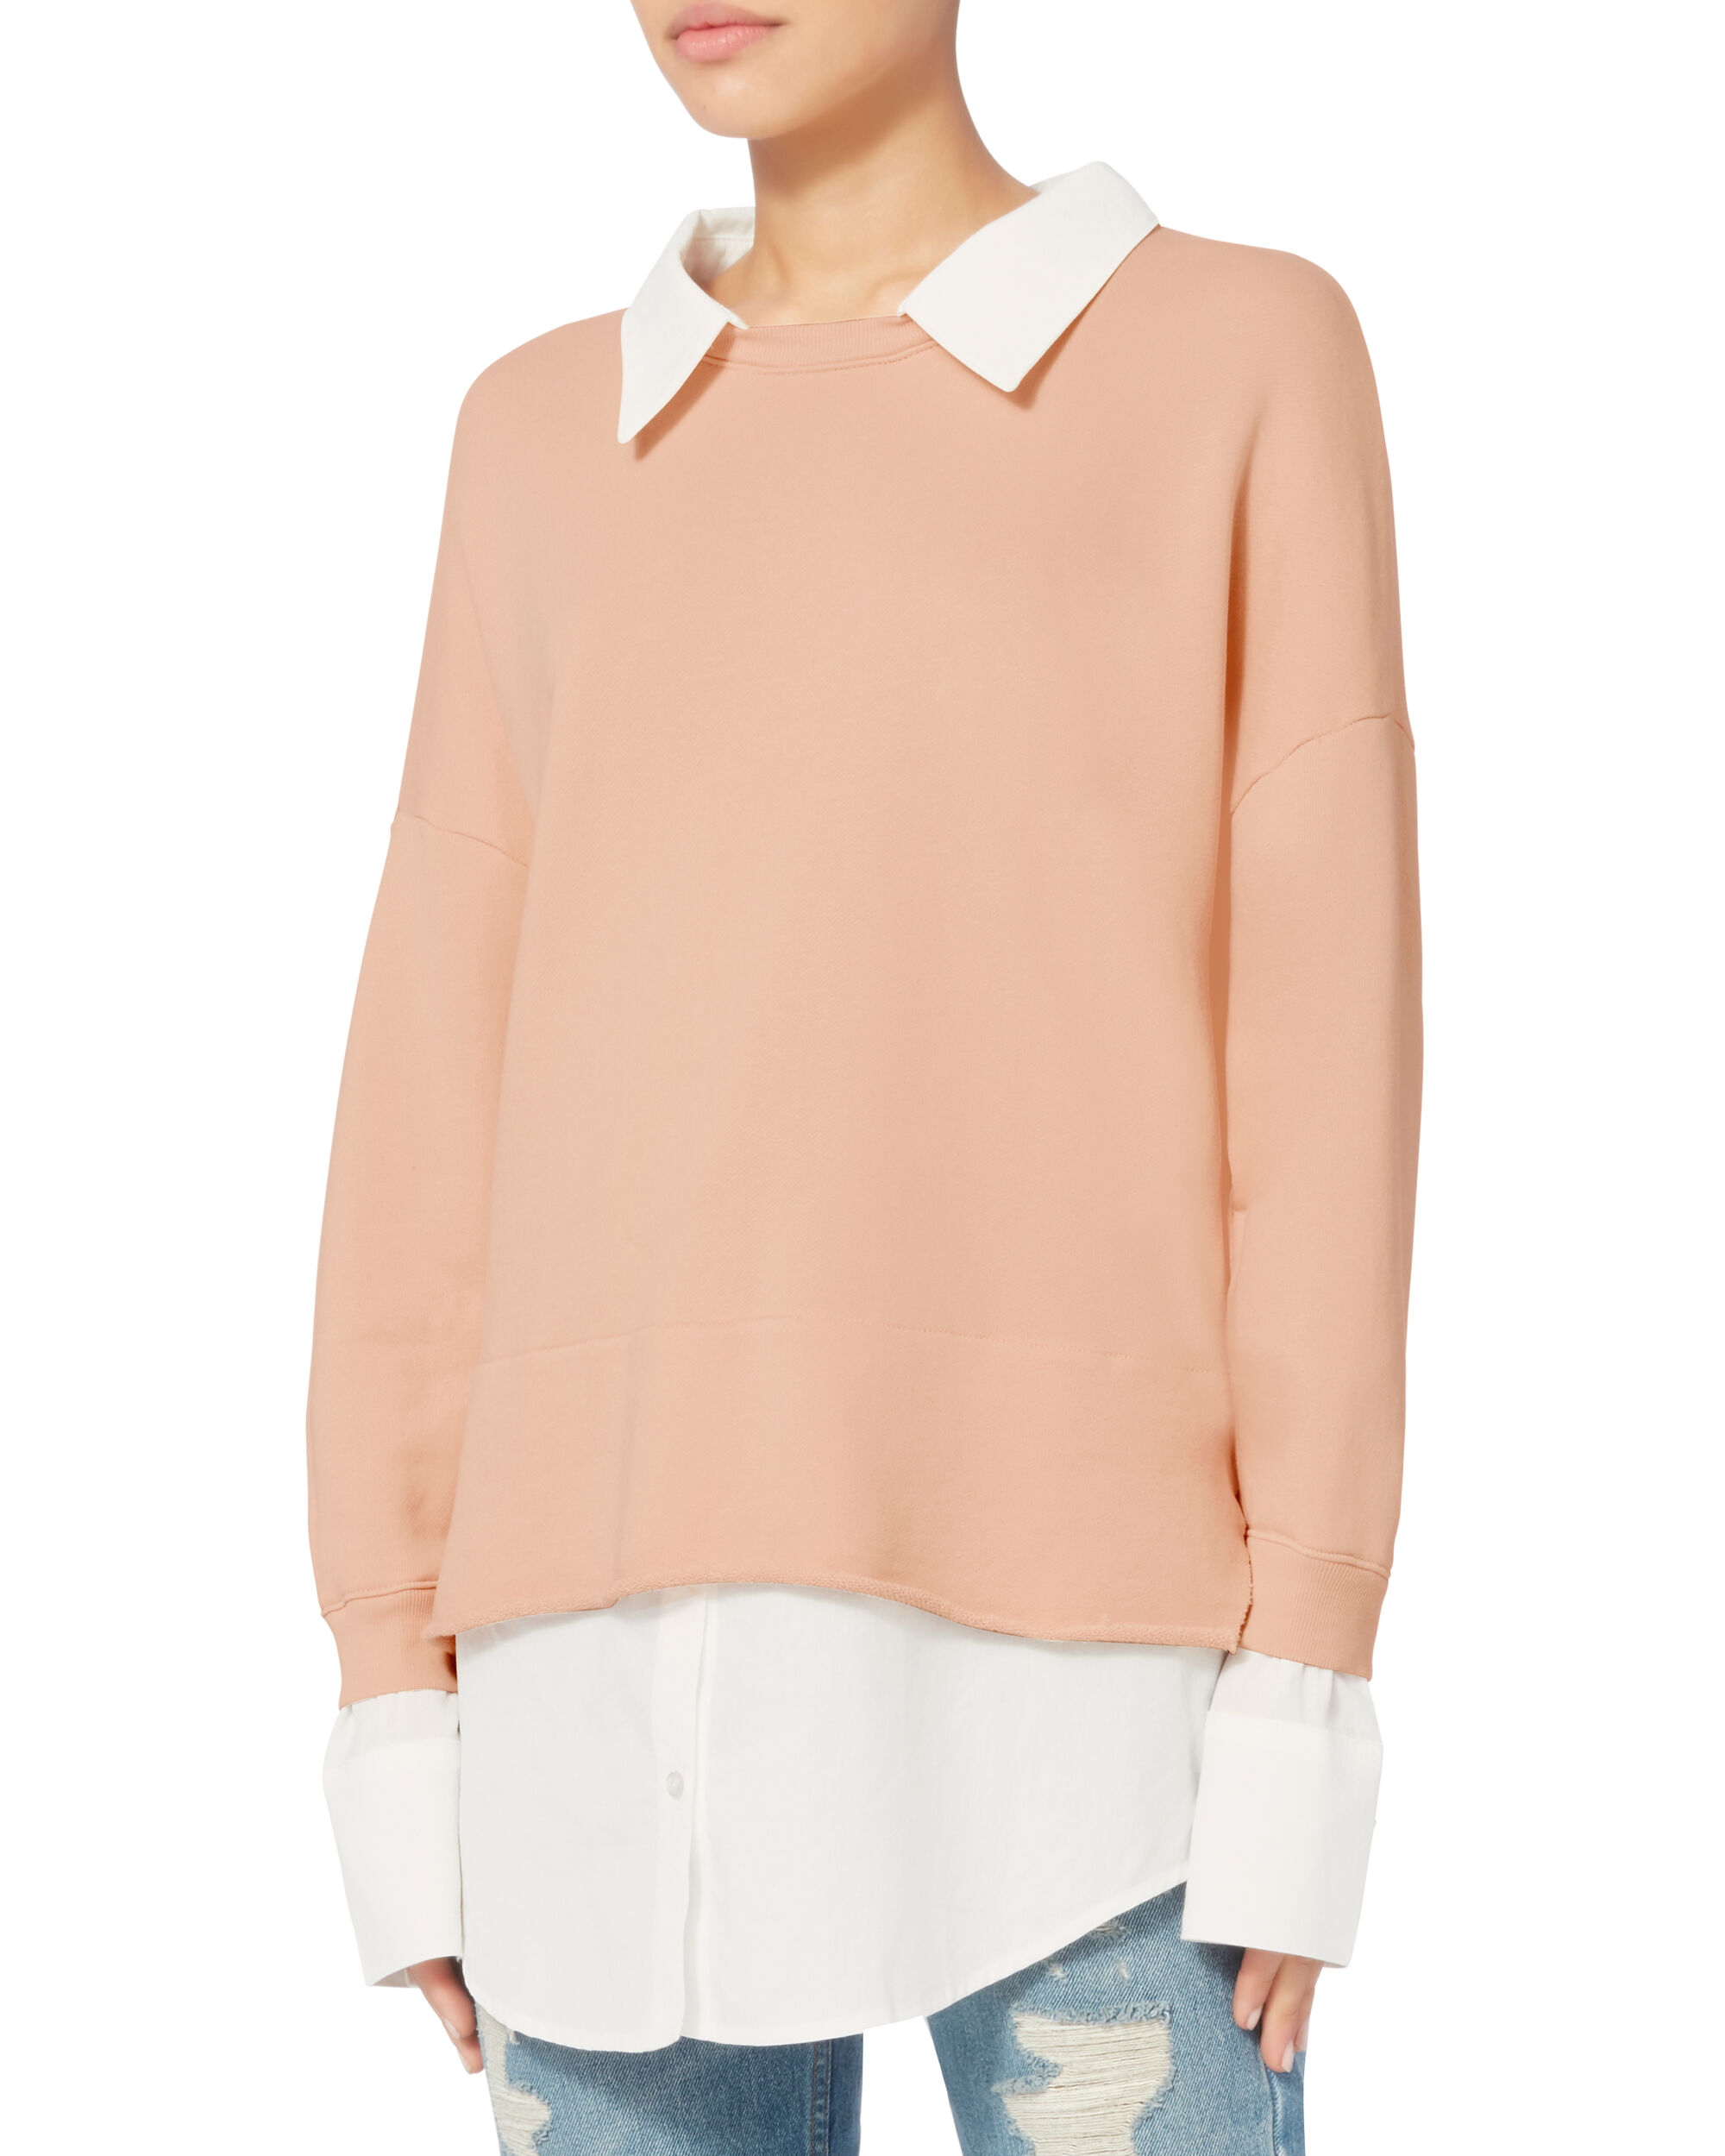 Twofer Sweatshirt, PINK, hi-res